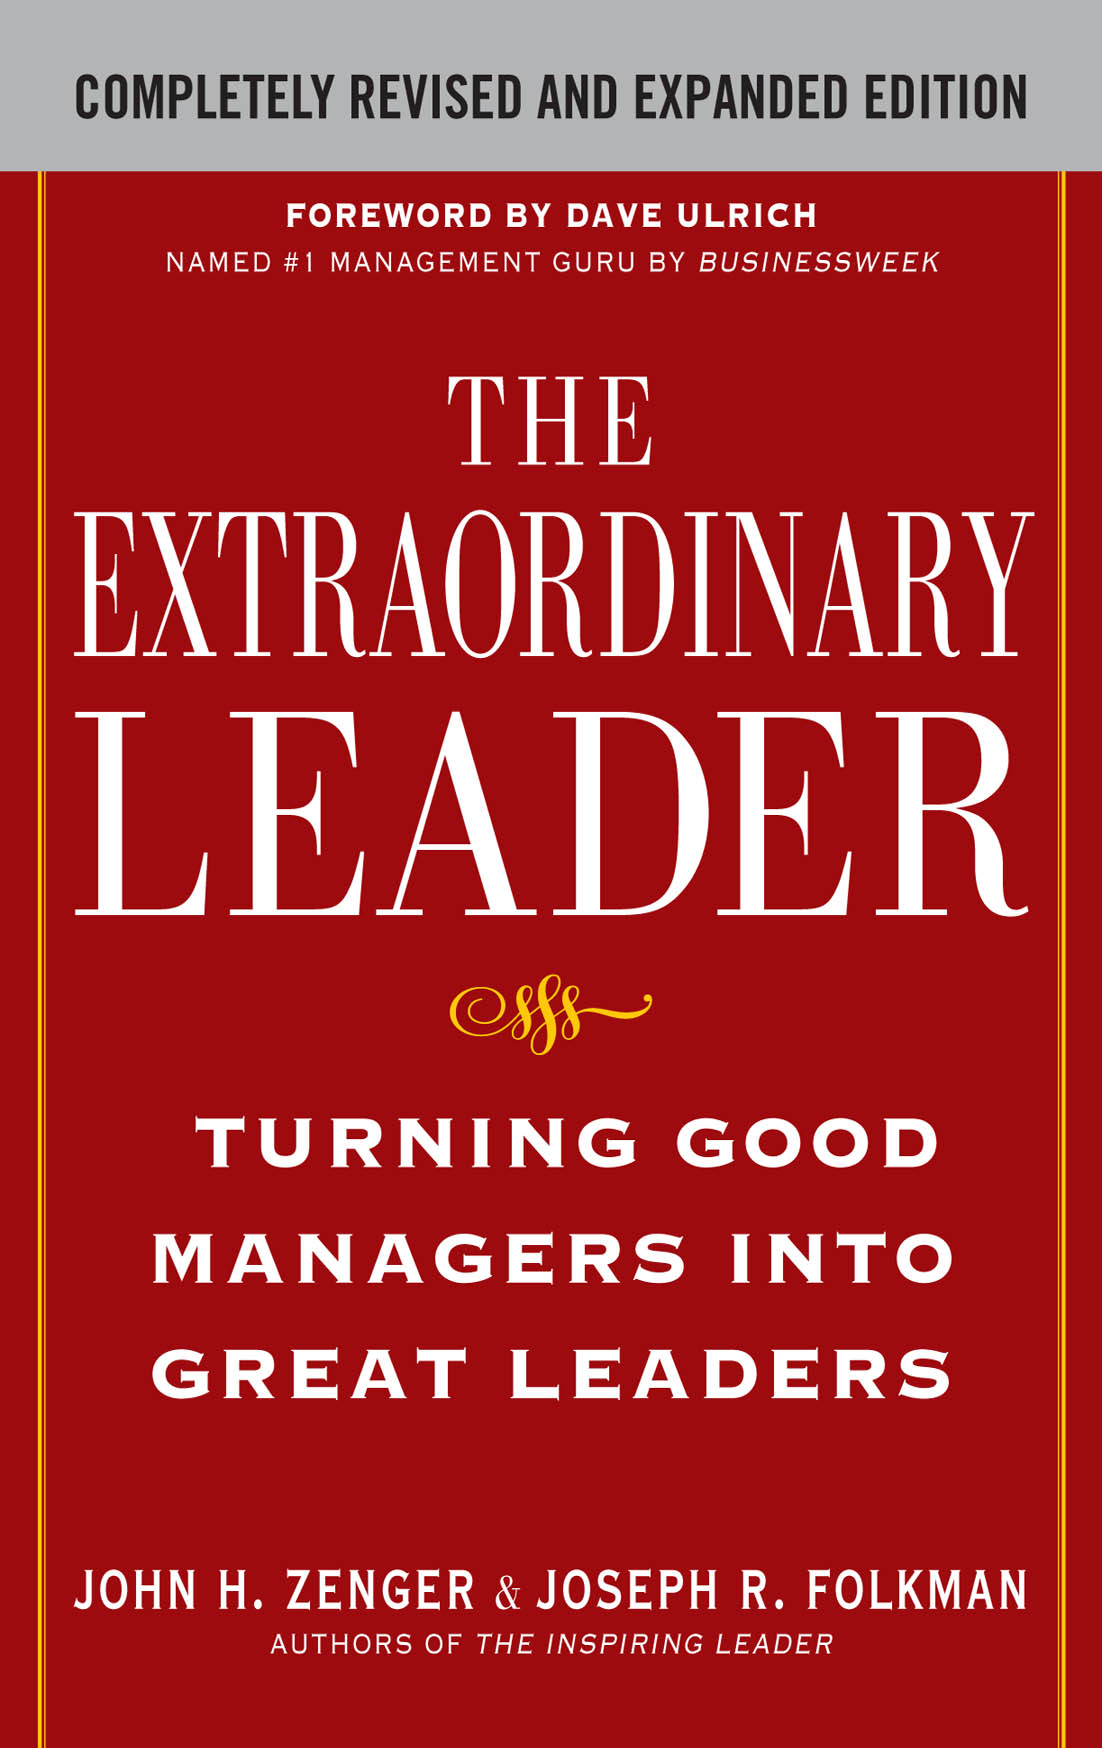 The Extraordinary Leader:  Turning Good Managers into Great Leaders By:  Joseph Folkman,John Zenger